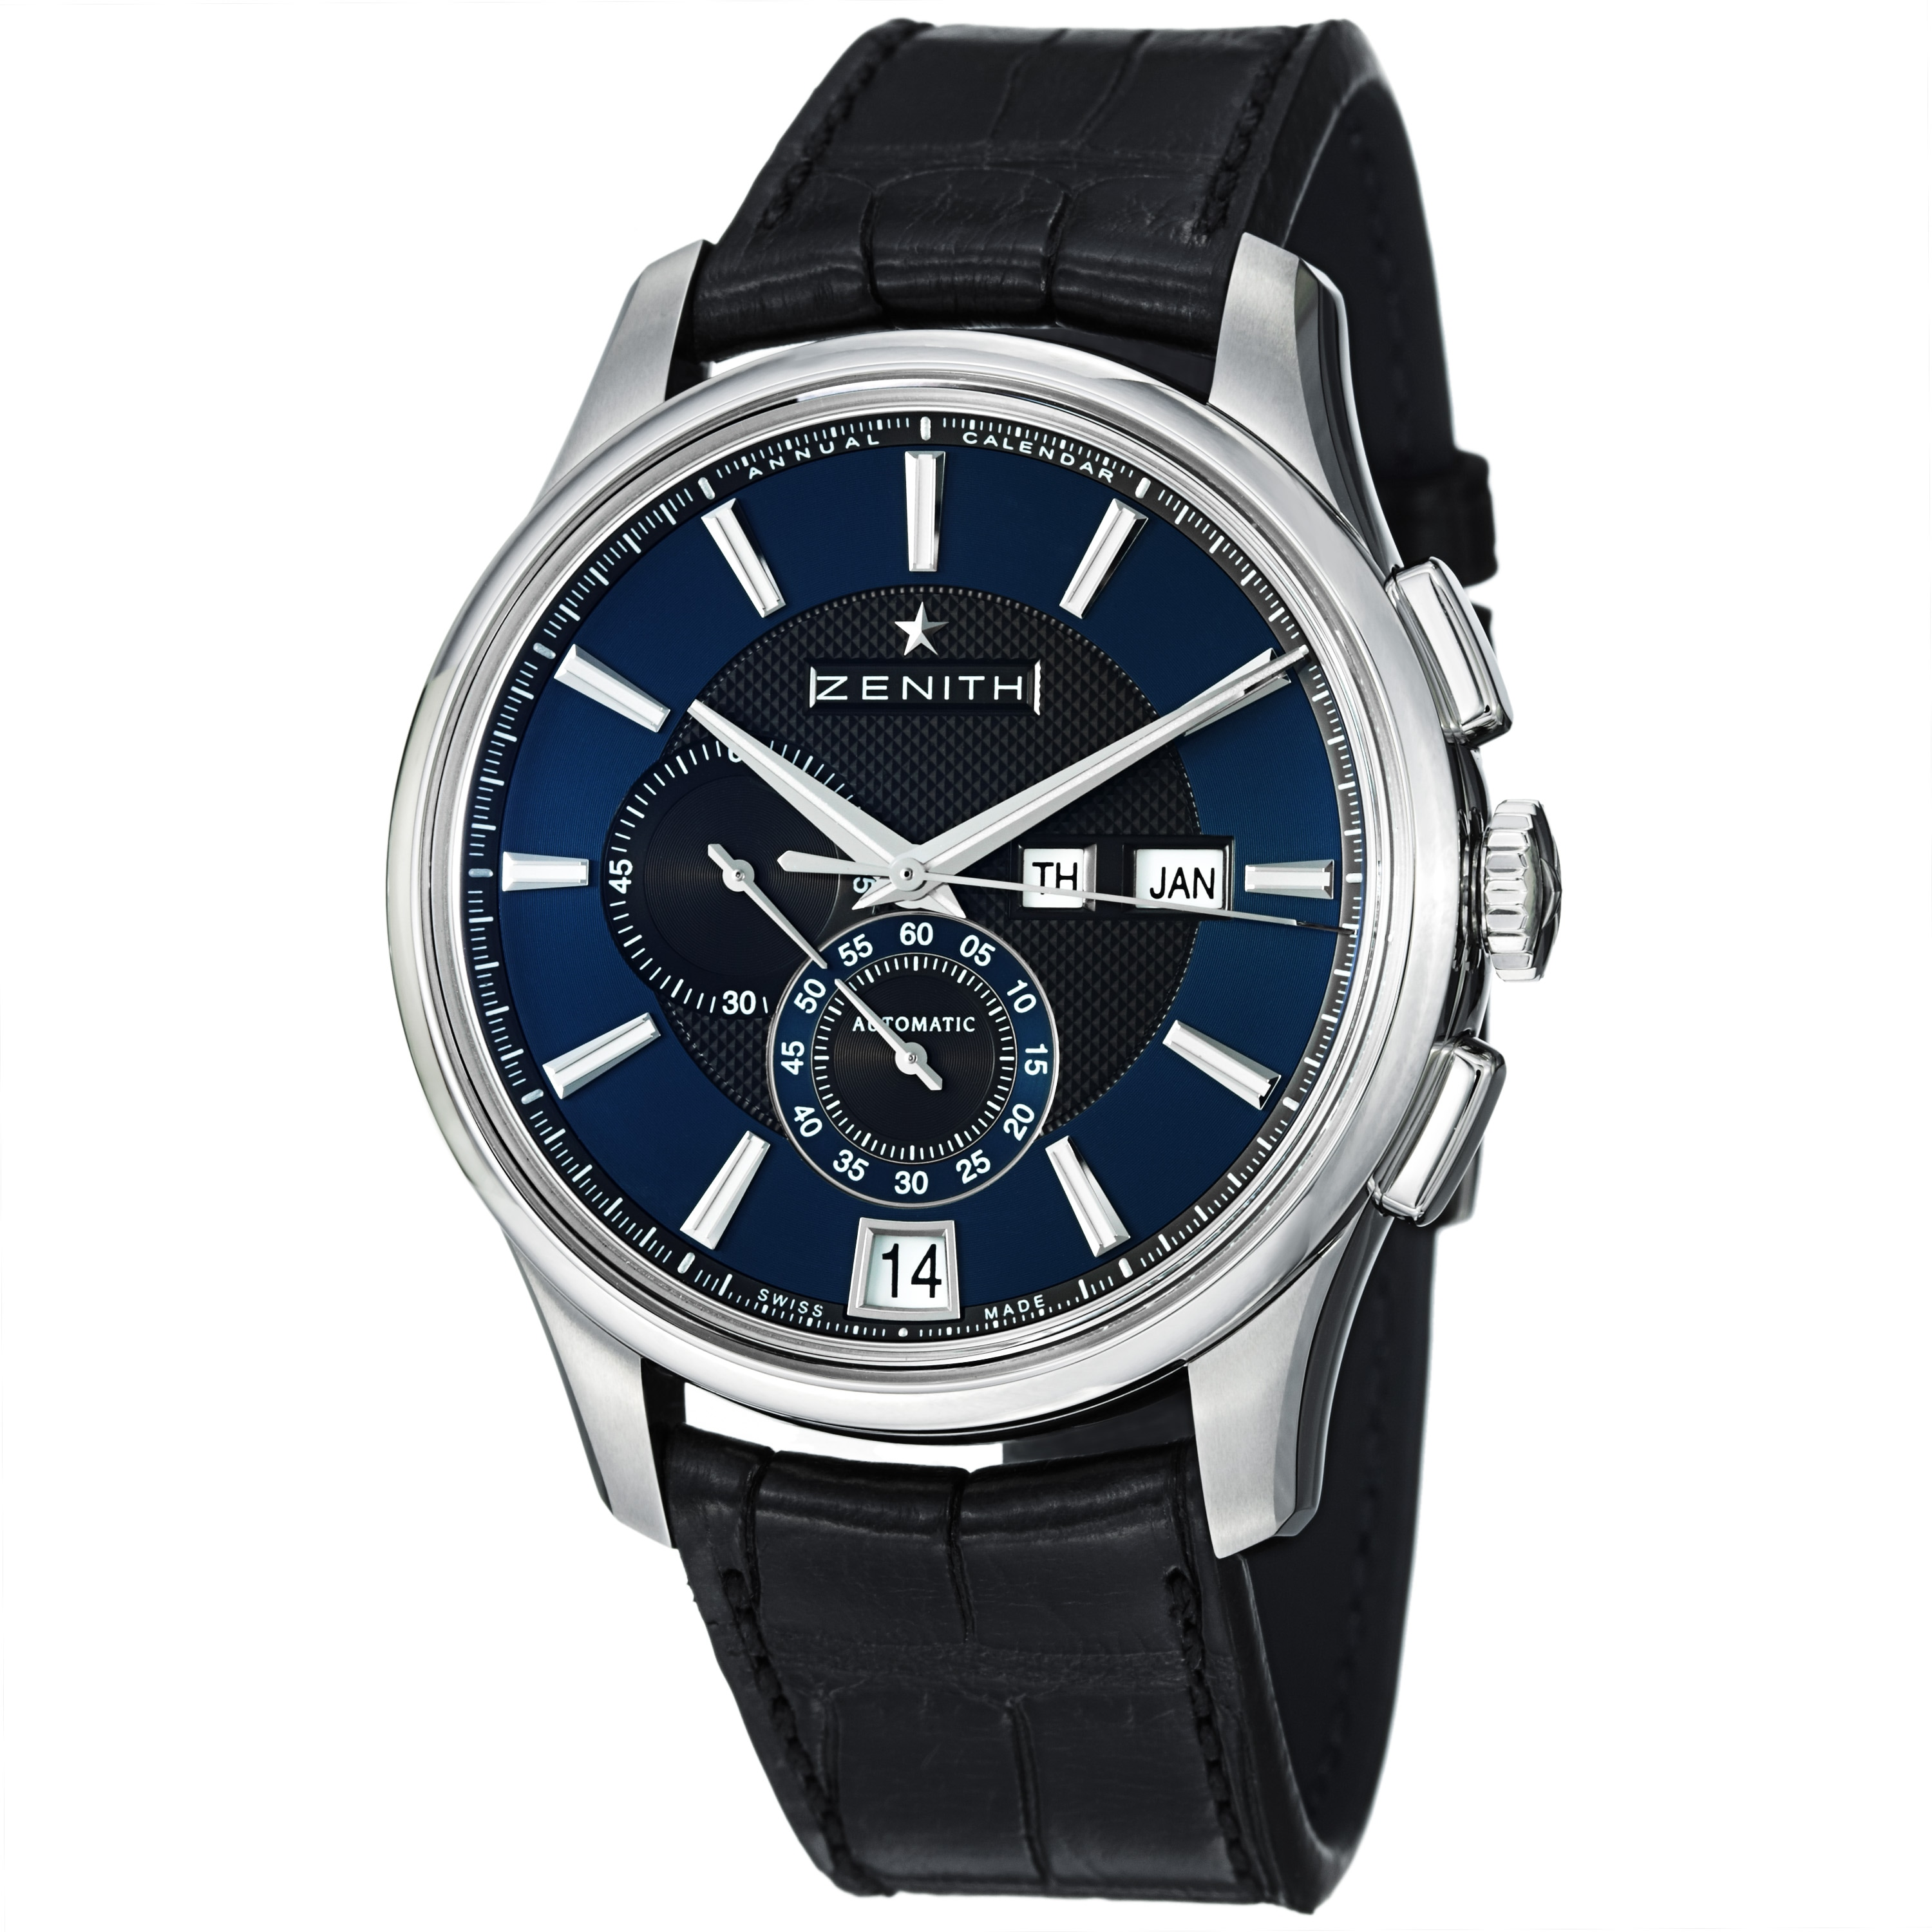 Zenith Men's 'Captain Winsor' Blue Dial Black Leather Strap Watch